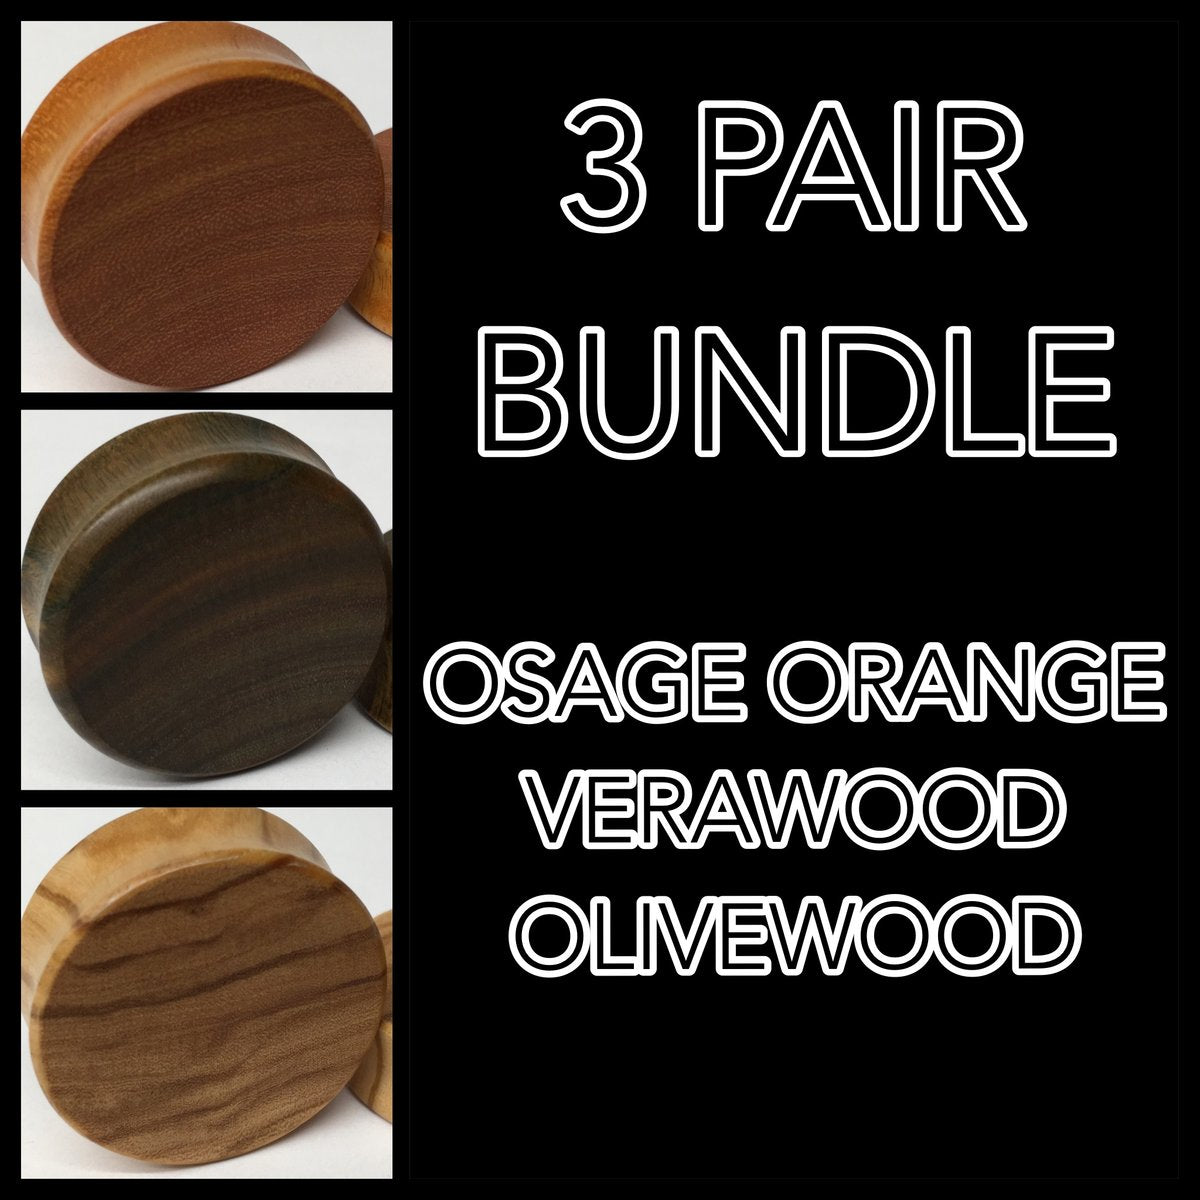 Osage Orange, Verawood, Olivewood Bundle